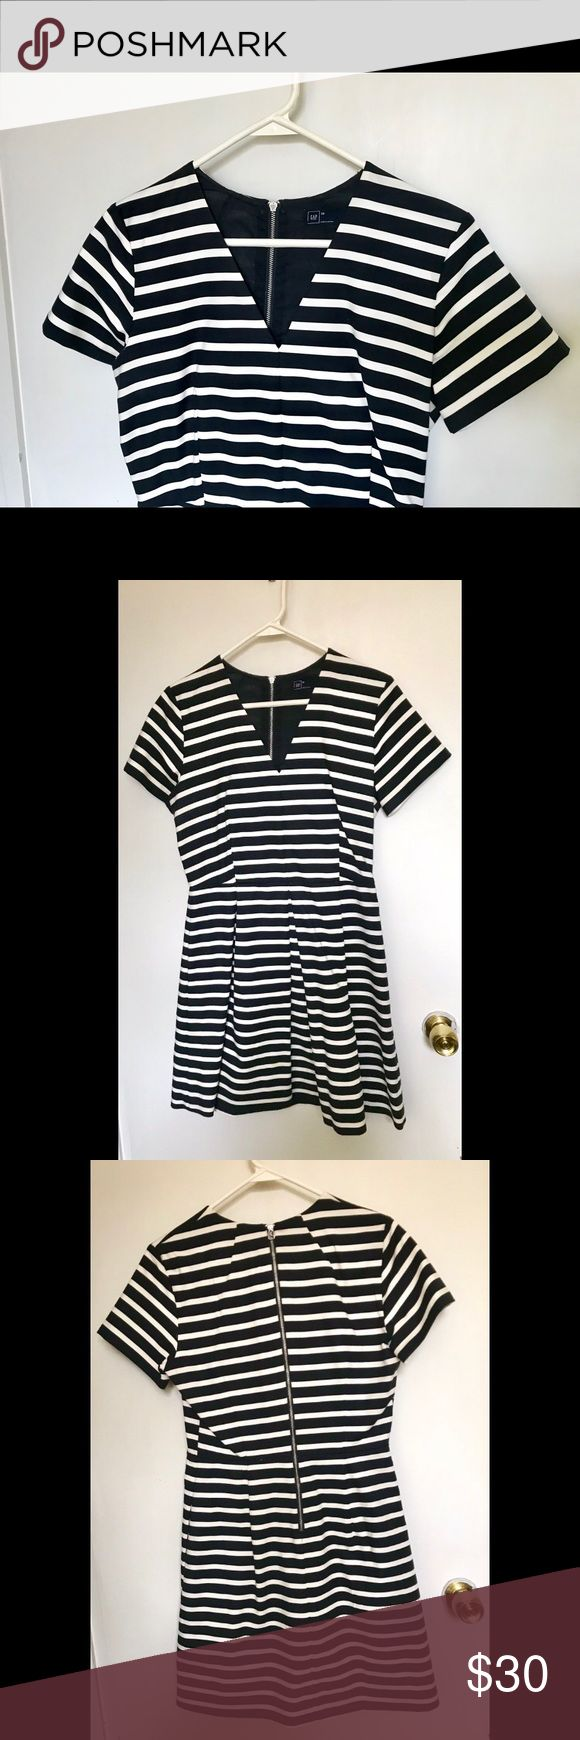 Gap Navy/White Striped Cocktail Dress Super cute, only worn once to a banquet. V-neck, and it has pockets! Has one small stain that is hardly noticeable. GAP Dresses Midi